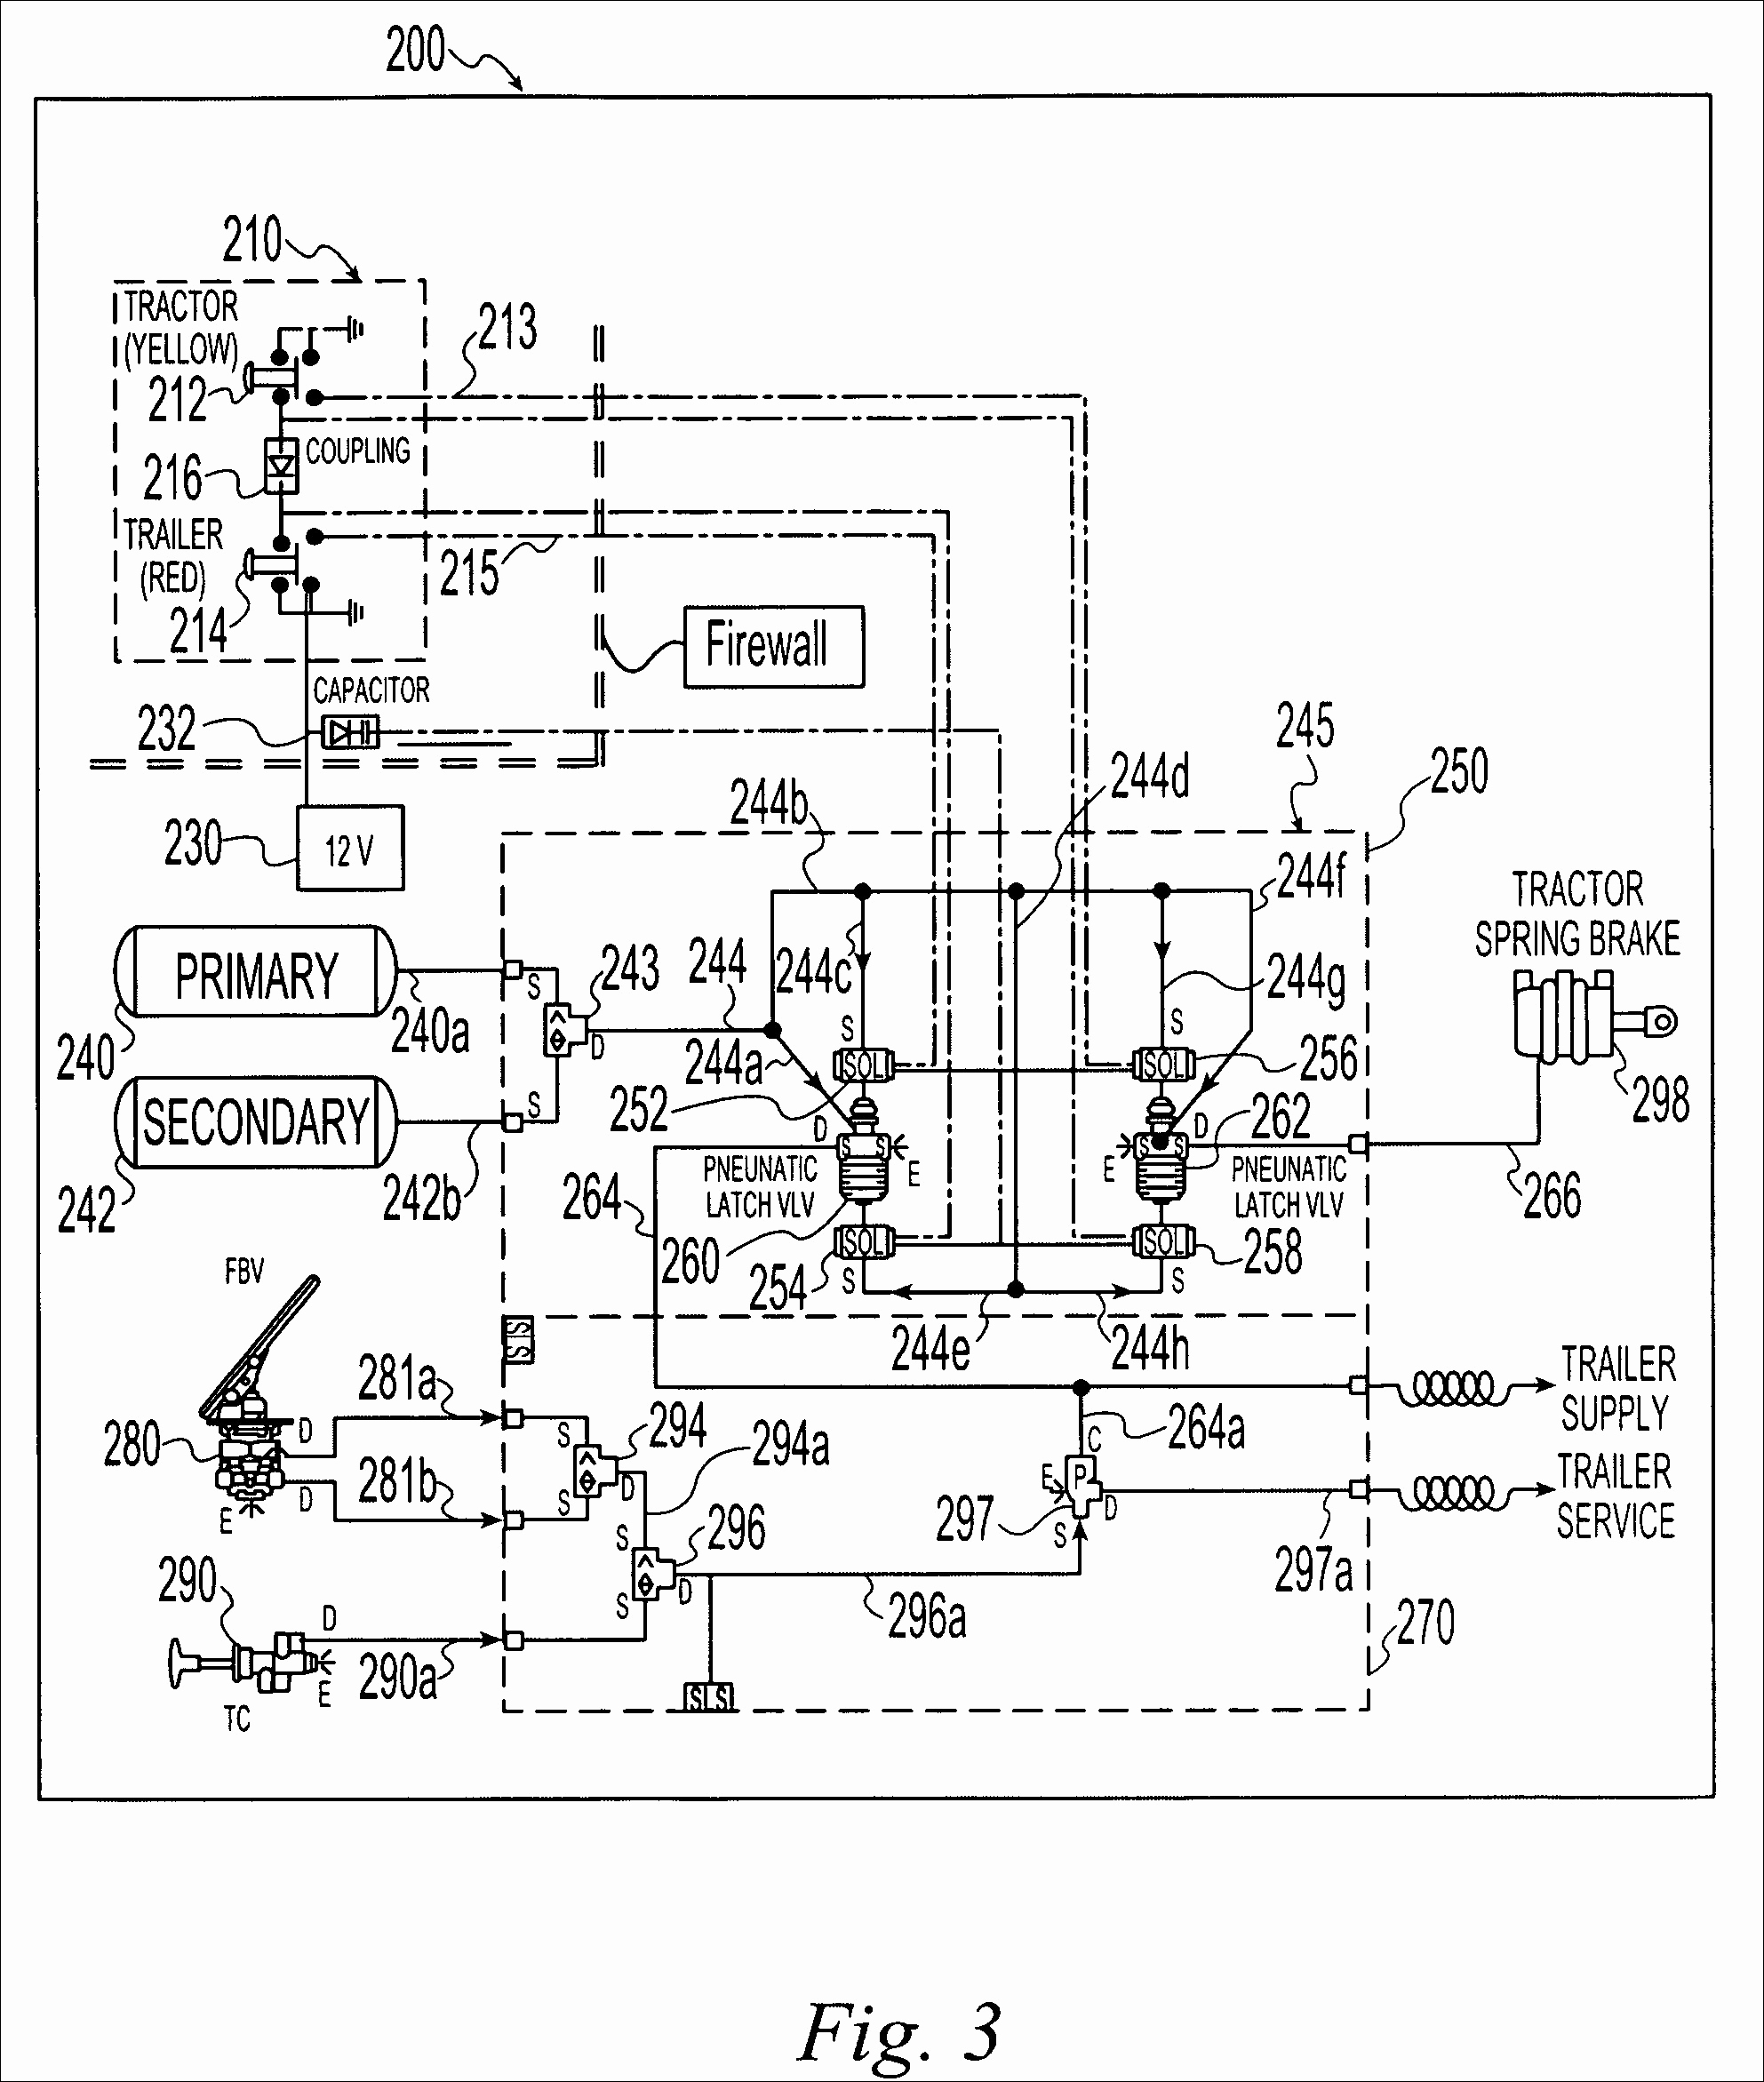 1994 Chevy Silverado Wiring Diagram from wholefoodsonabudget.com